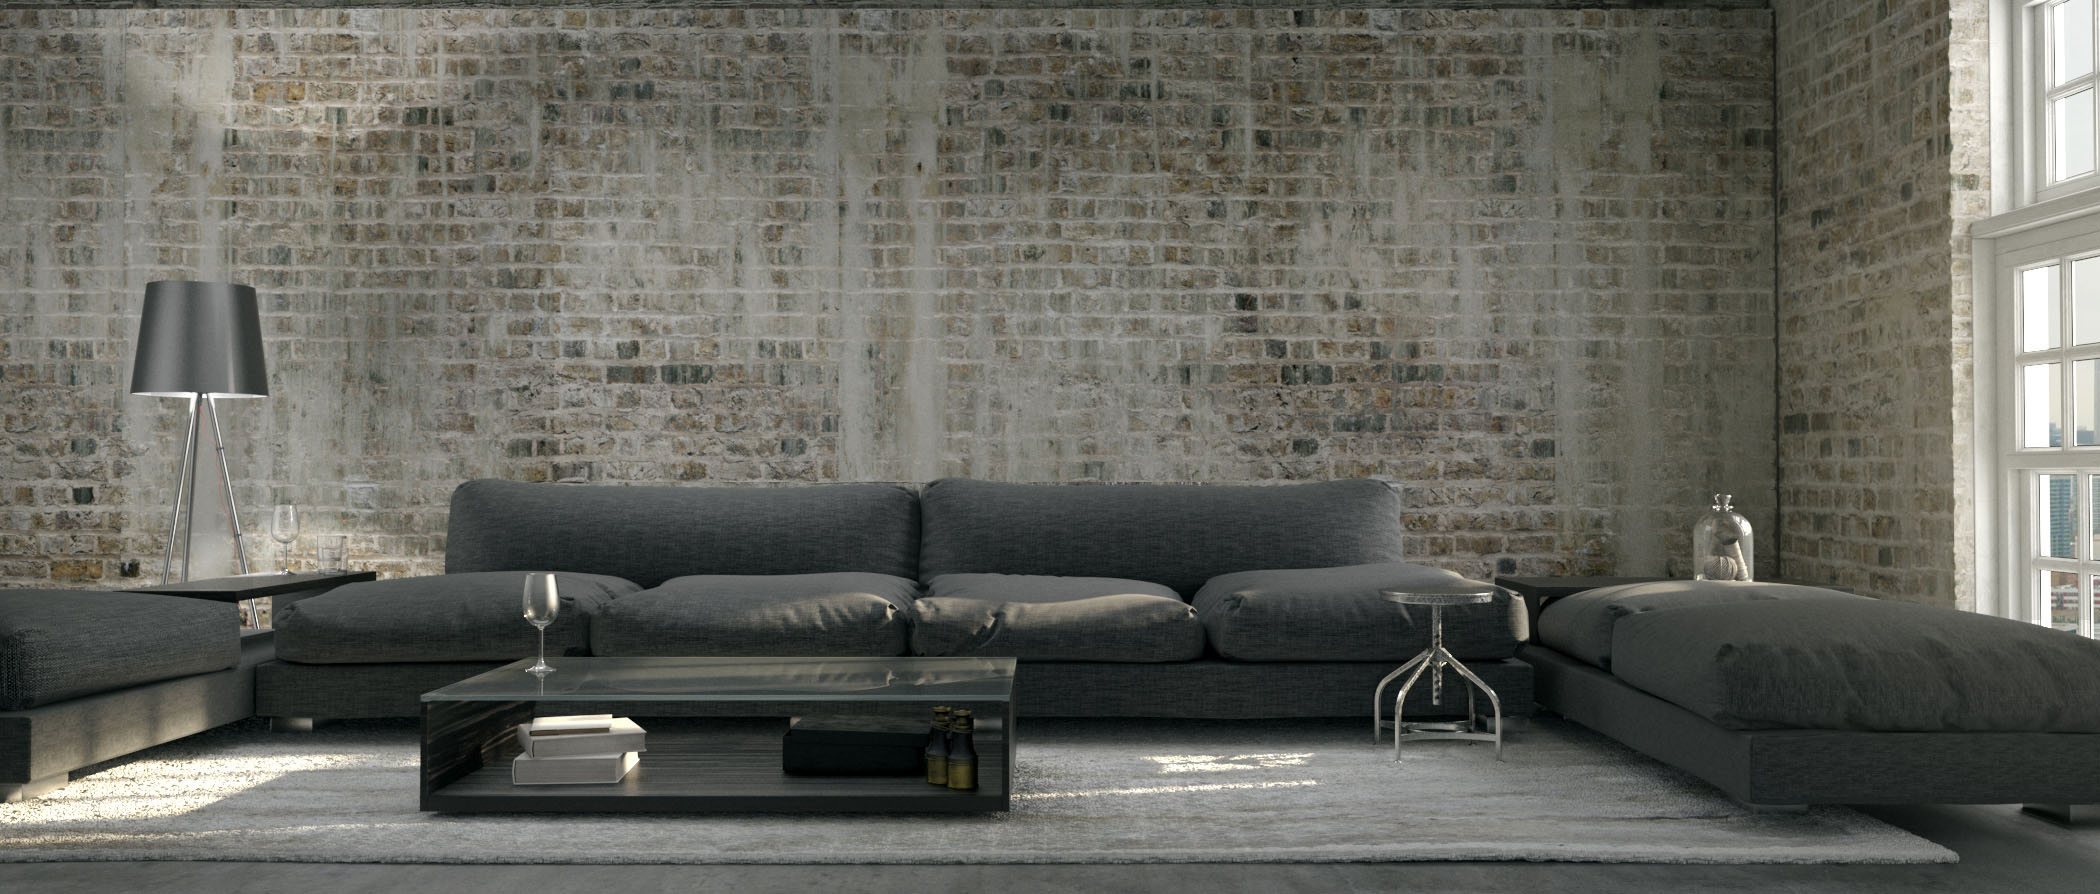 charcoal warehouse render_finished copy.jpg